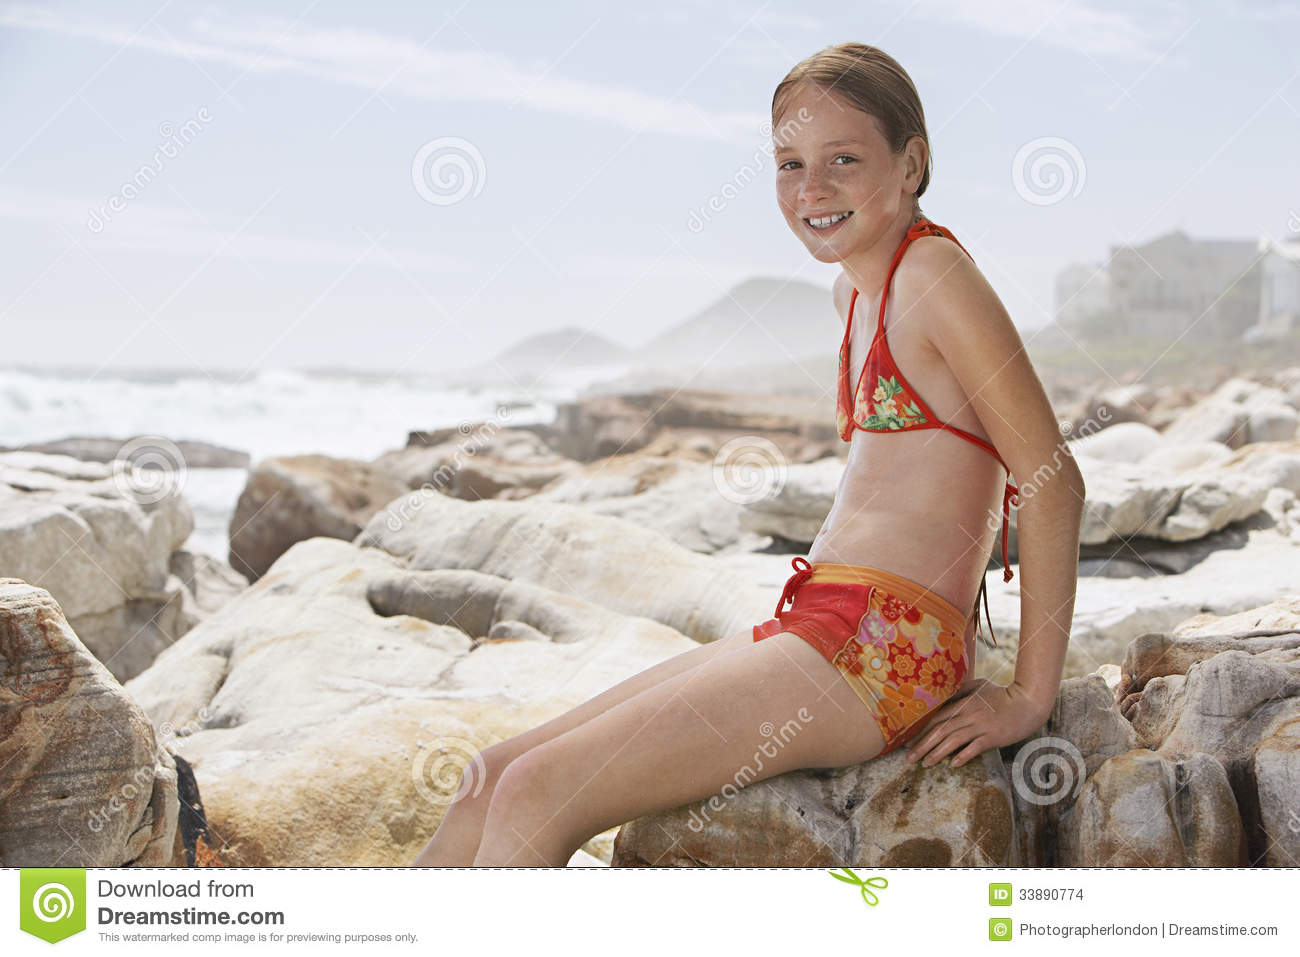 Name girl sitting on rock